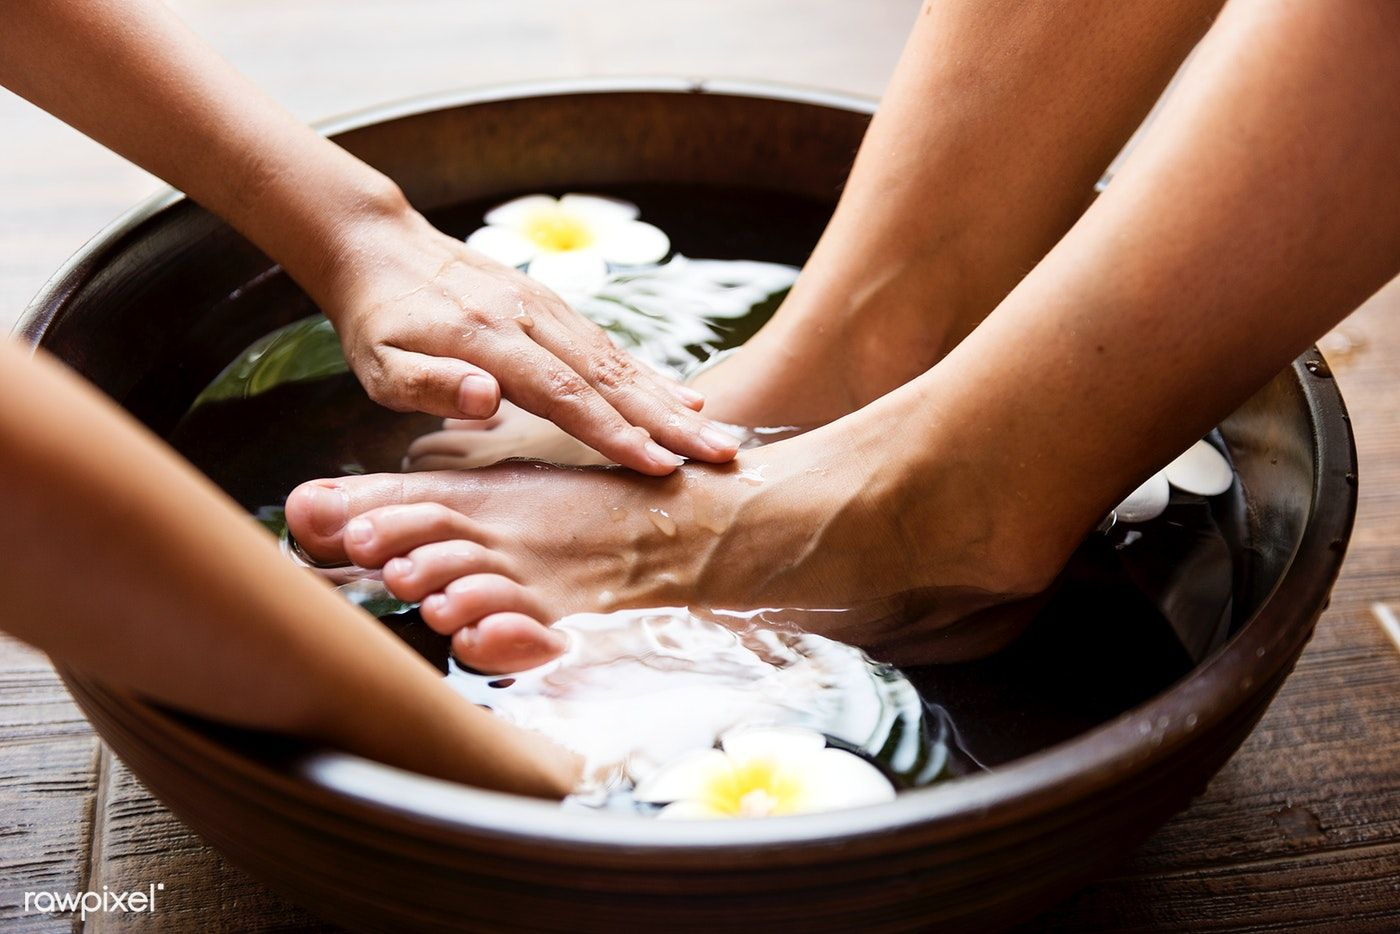 Download Premium Image Of Closeup Of A Foot Spa 399878 In 2020